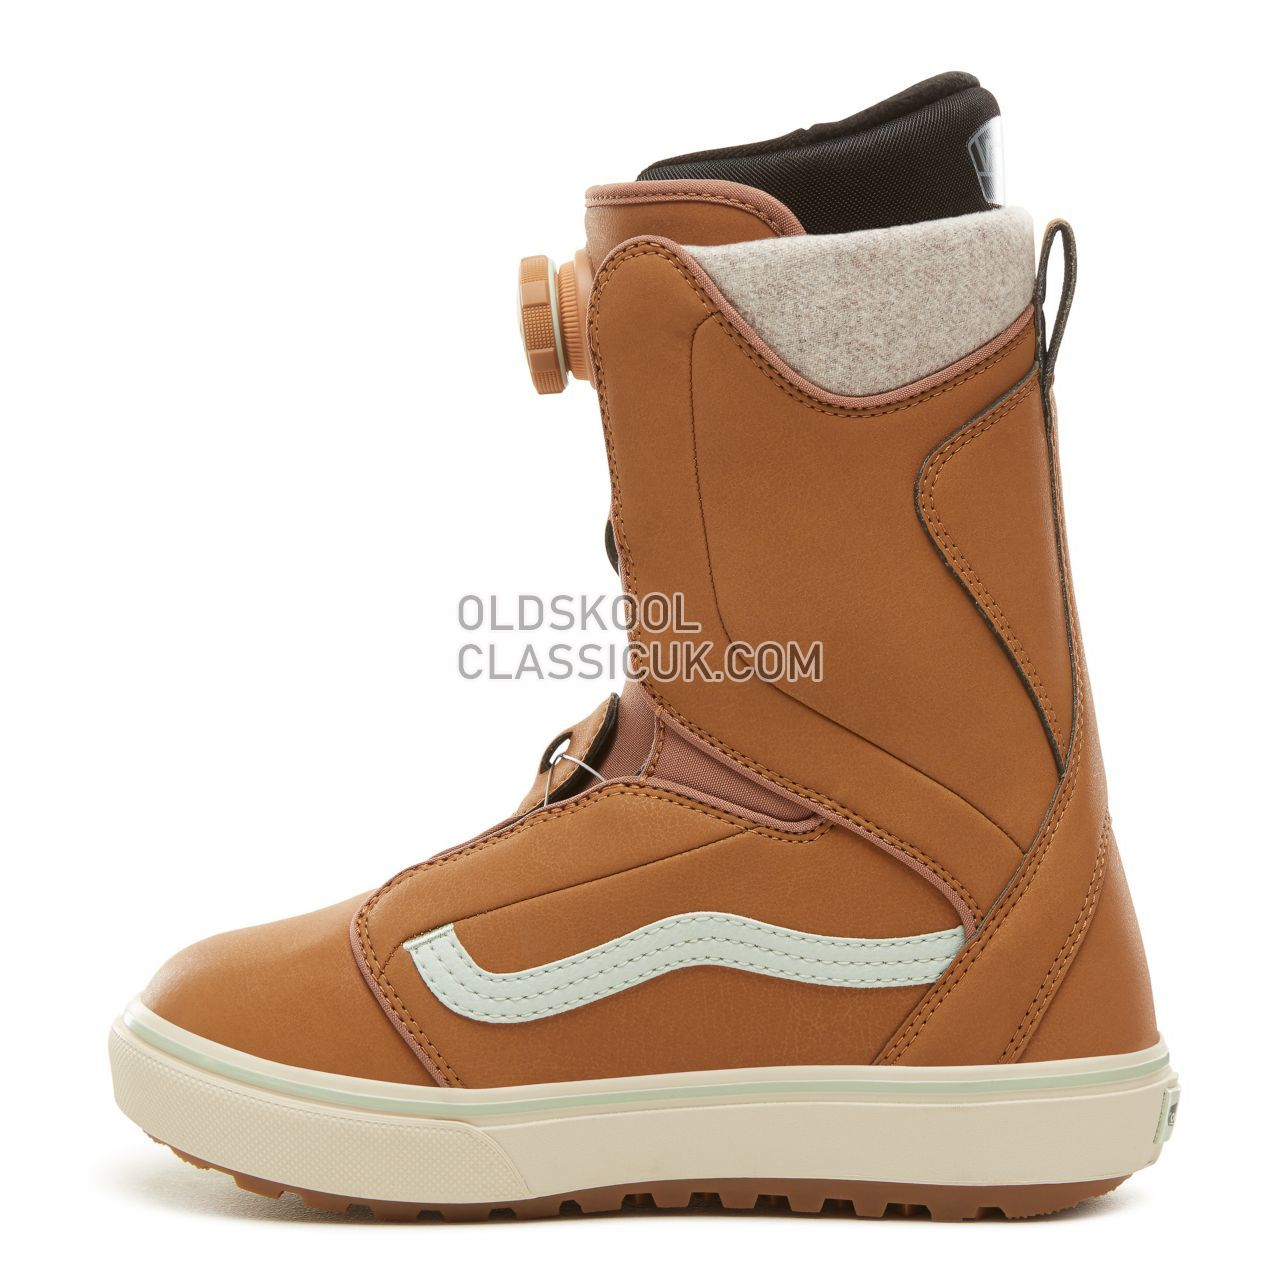 Vans Womens Encore OG Snowboots Womens Tan/Teal VA3TFPREO Shoes